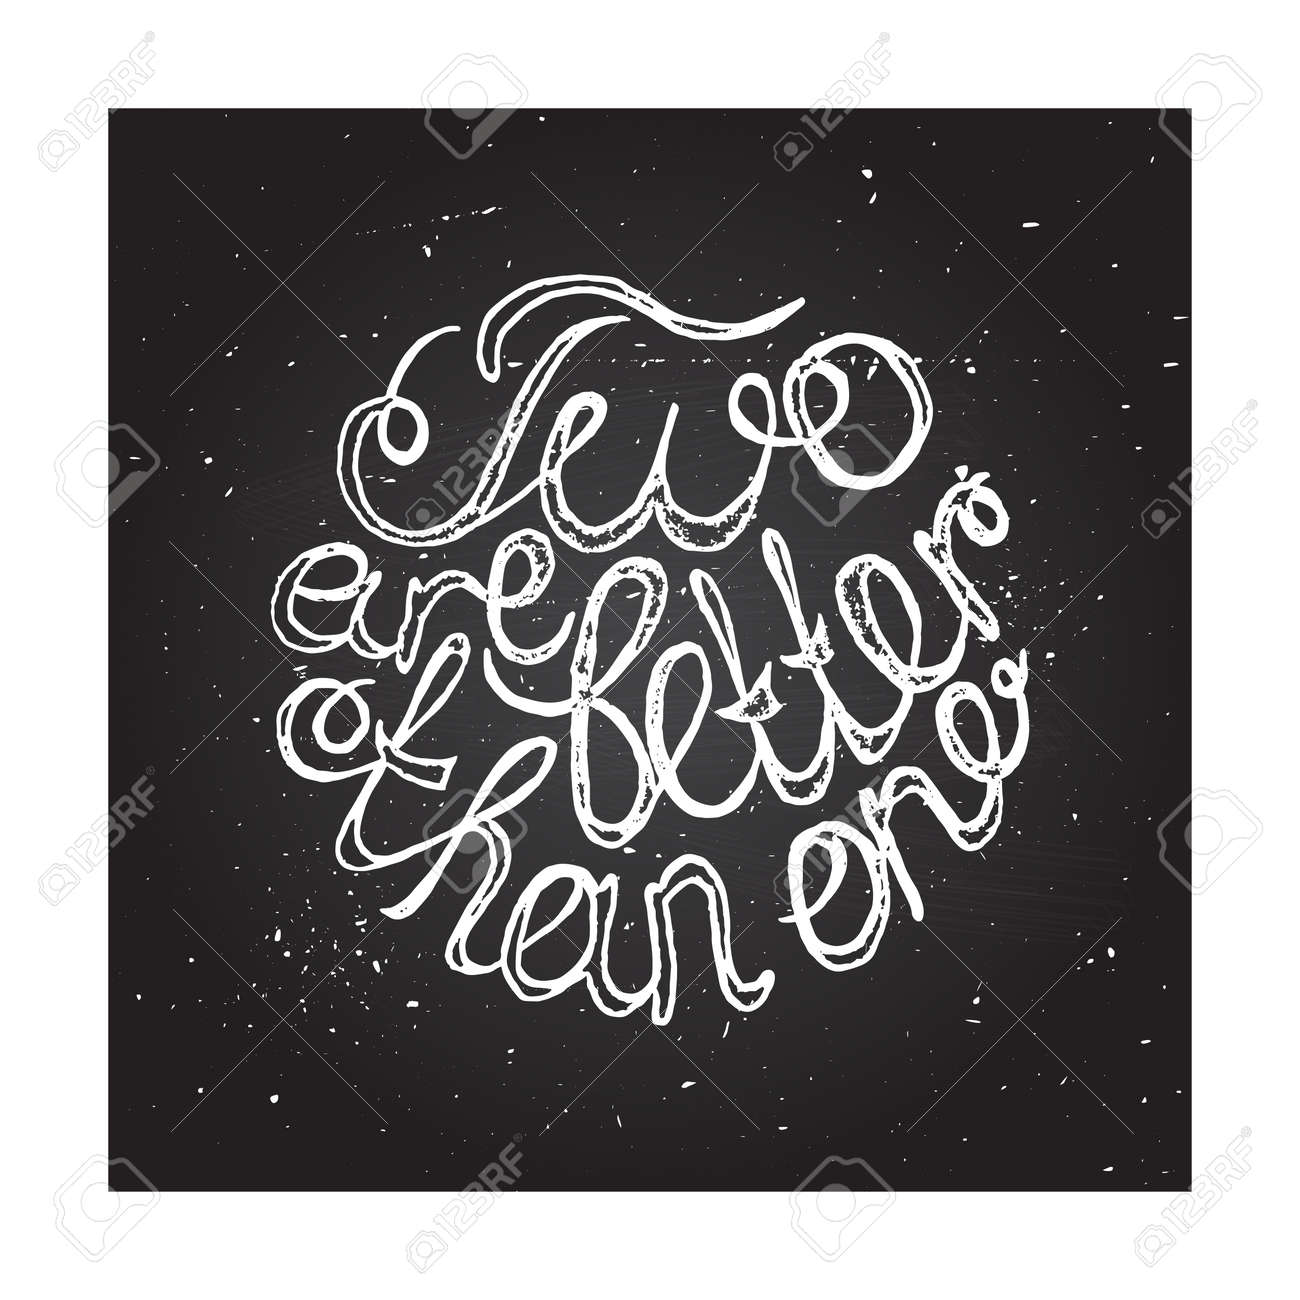 hand sketched typographic elements on chalkboard background for